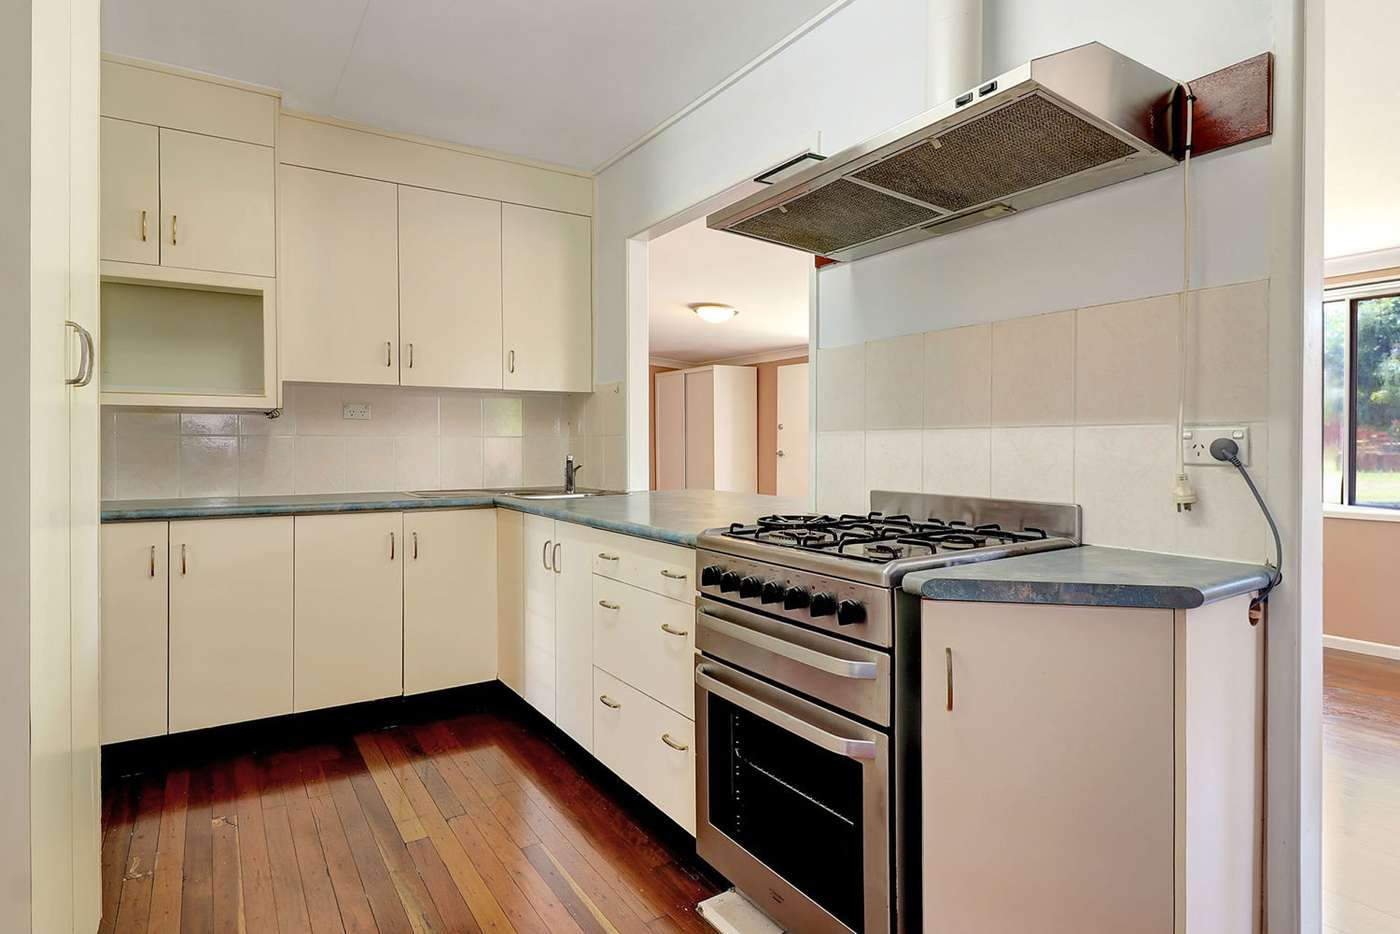 Sixth view of Homely house listing, 5 Crane Street, Emu Park QLD 4710